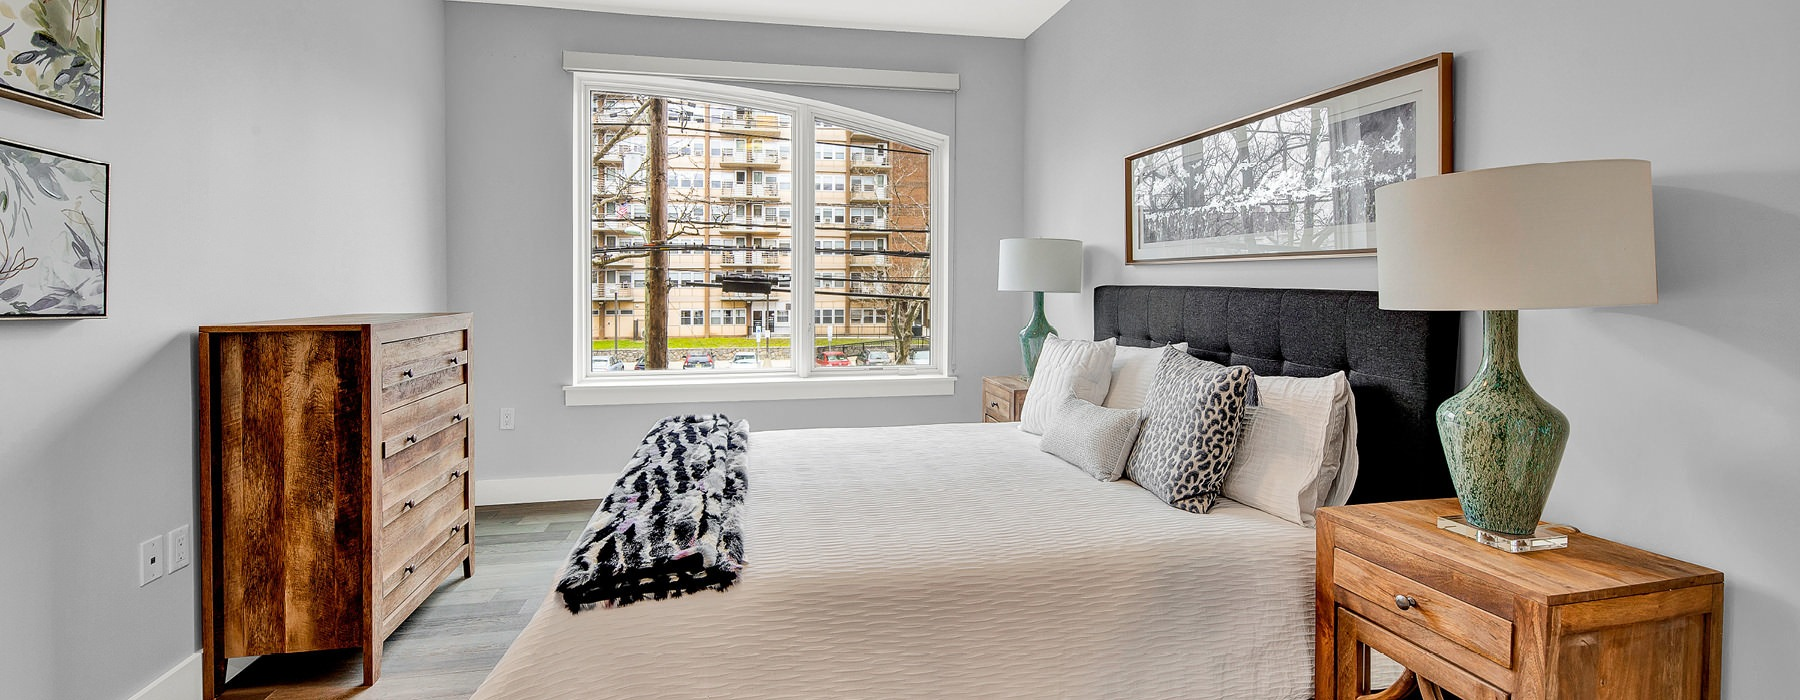 spacious master bedroom with light fixture and large windows